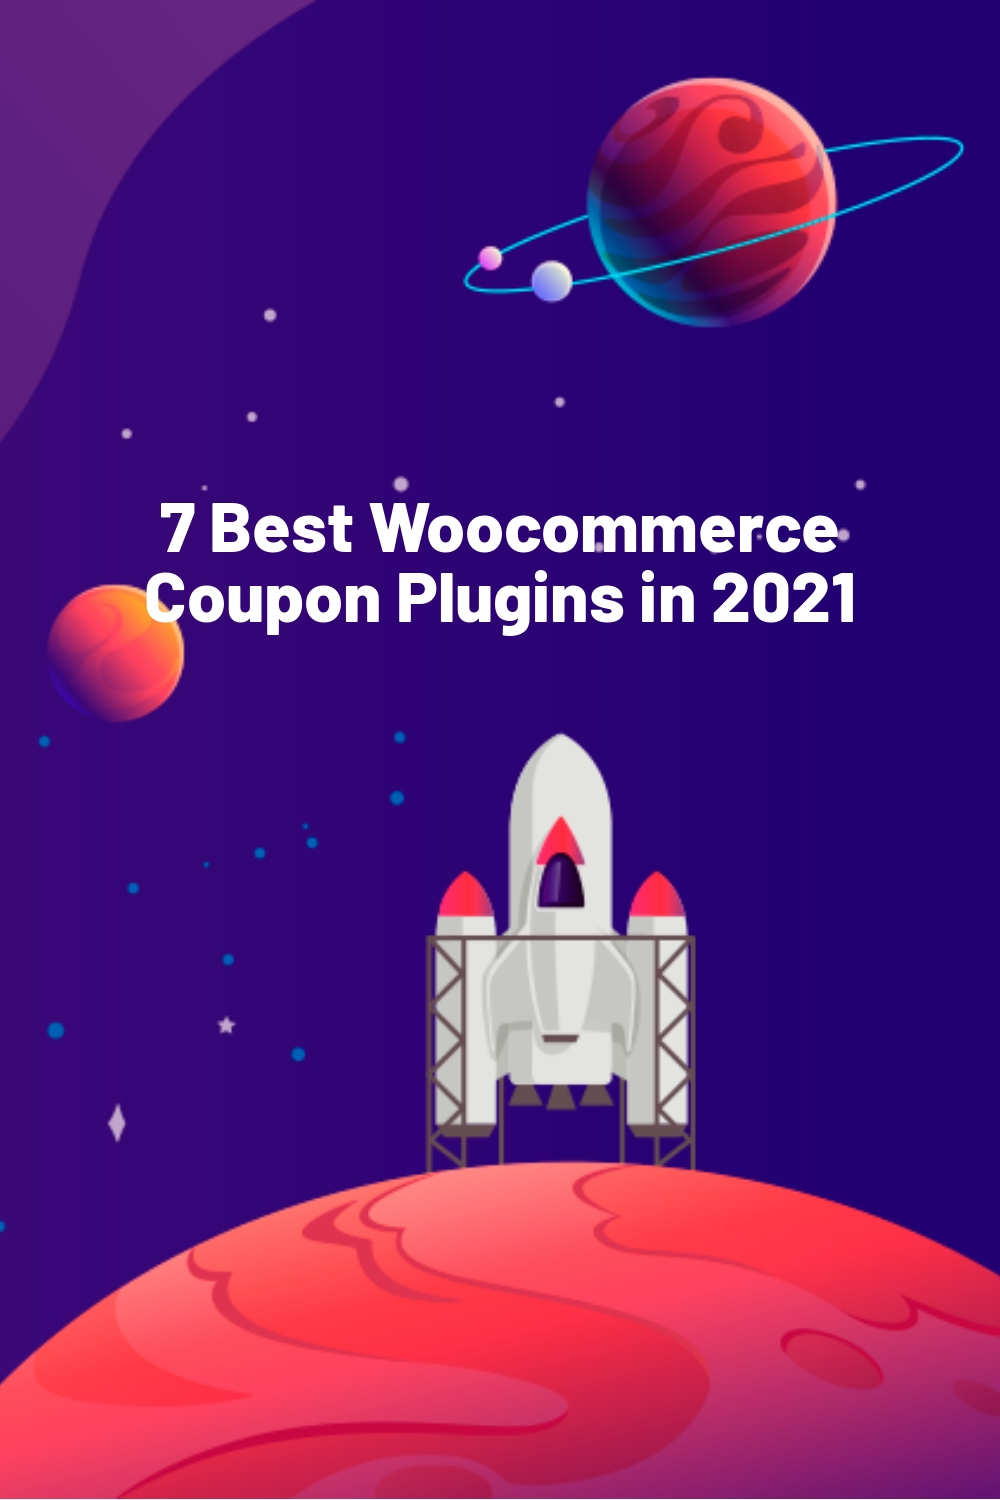 7 Best Woocommerce Coupon Plugins in 2021